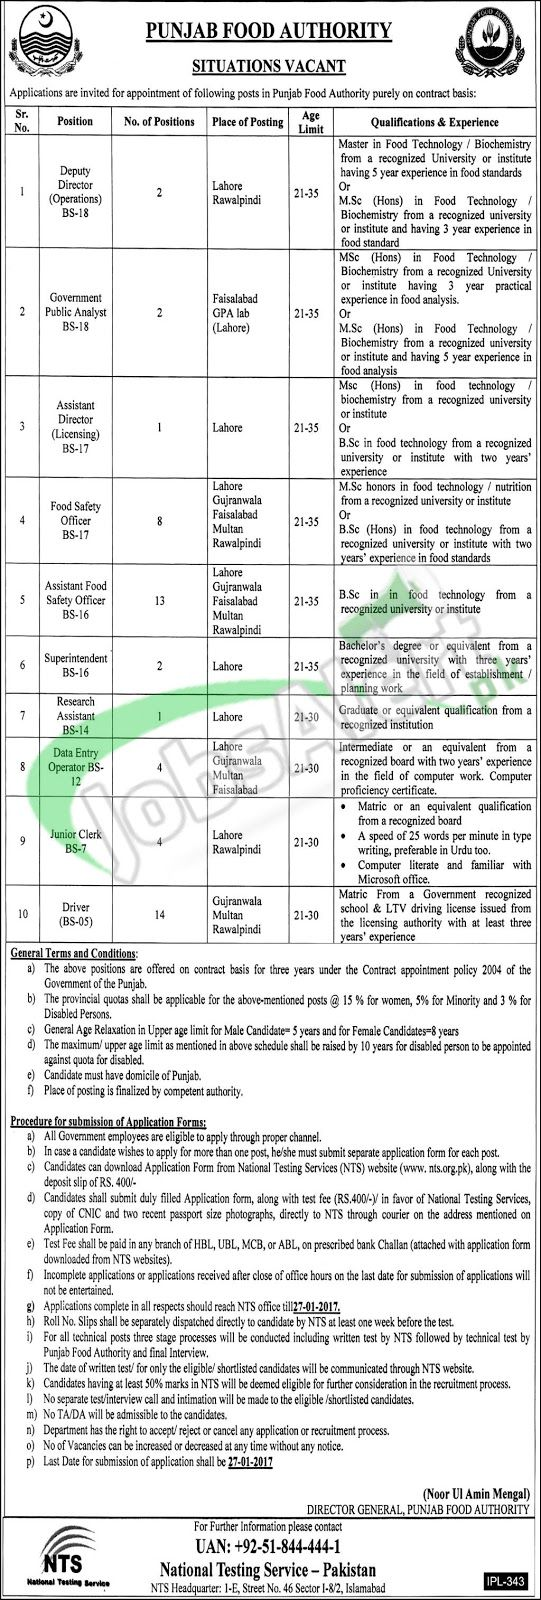 Food Safety Officer Jobs  In Punjab Food Authority Before